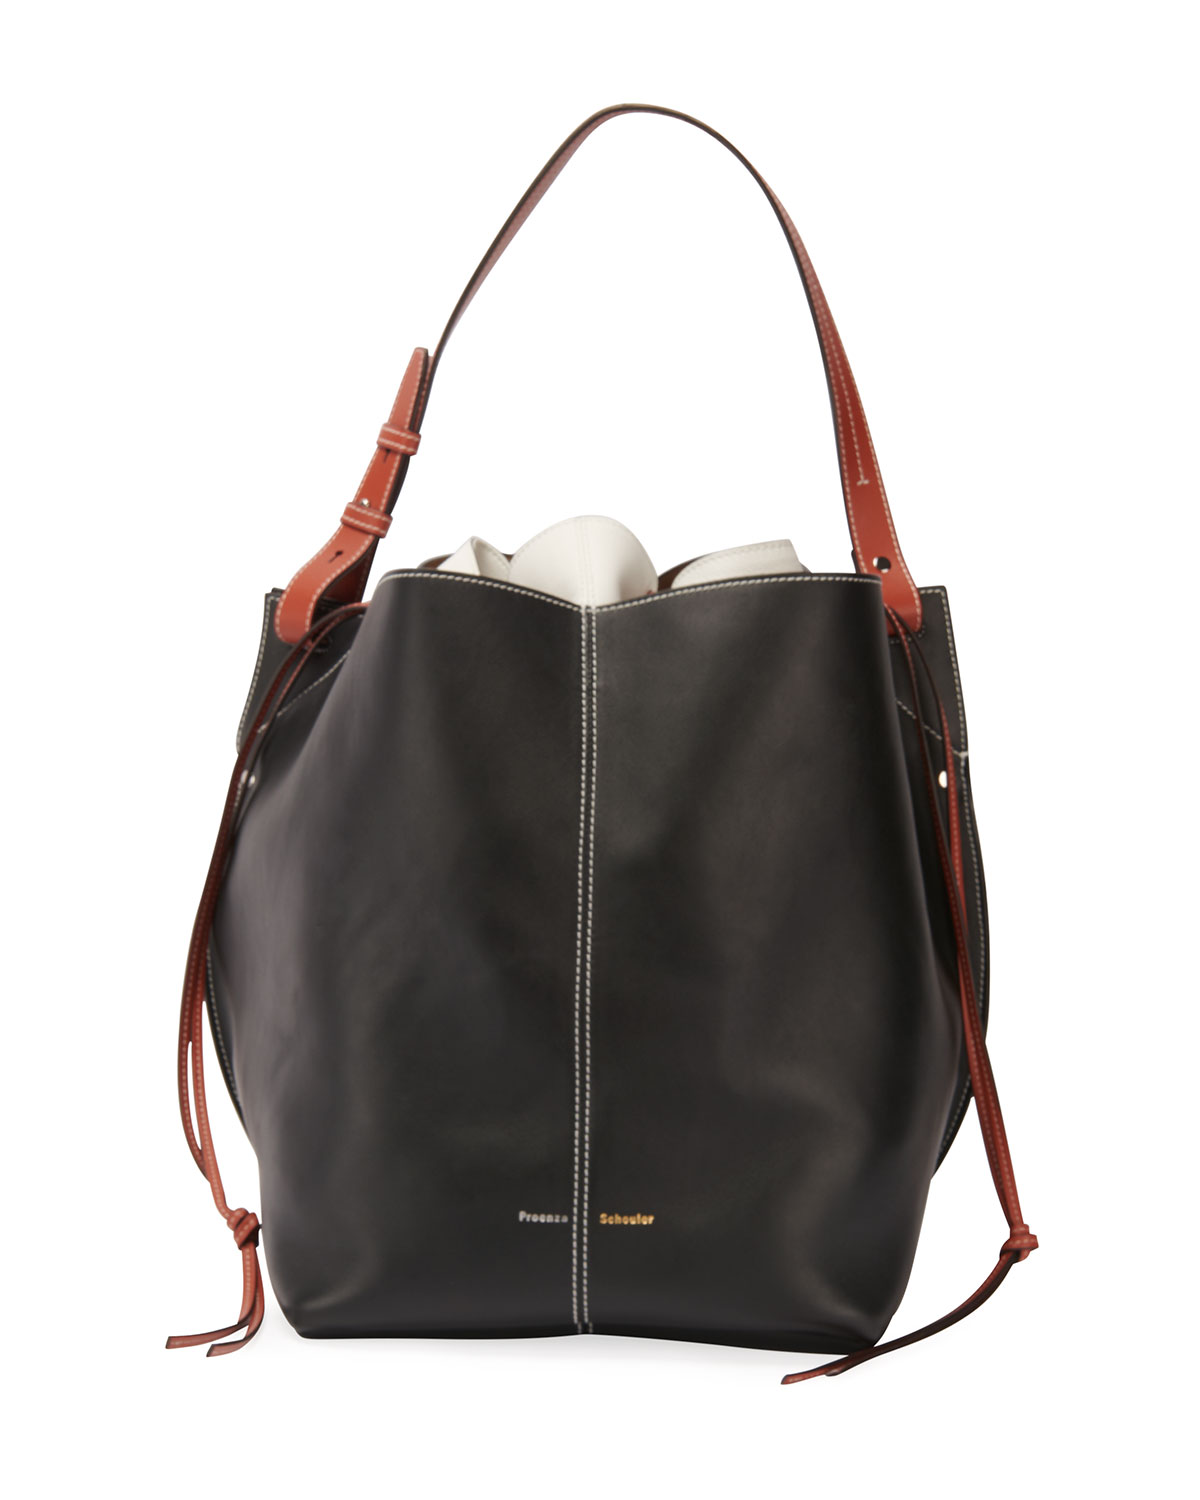 Proenza Schouler Smooth Leather Bucket Bag